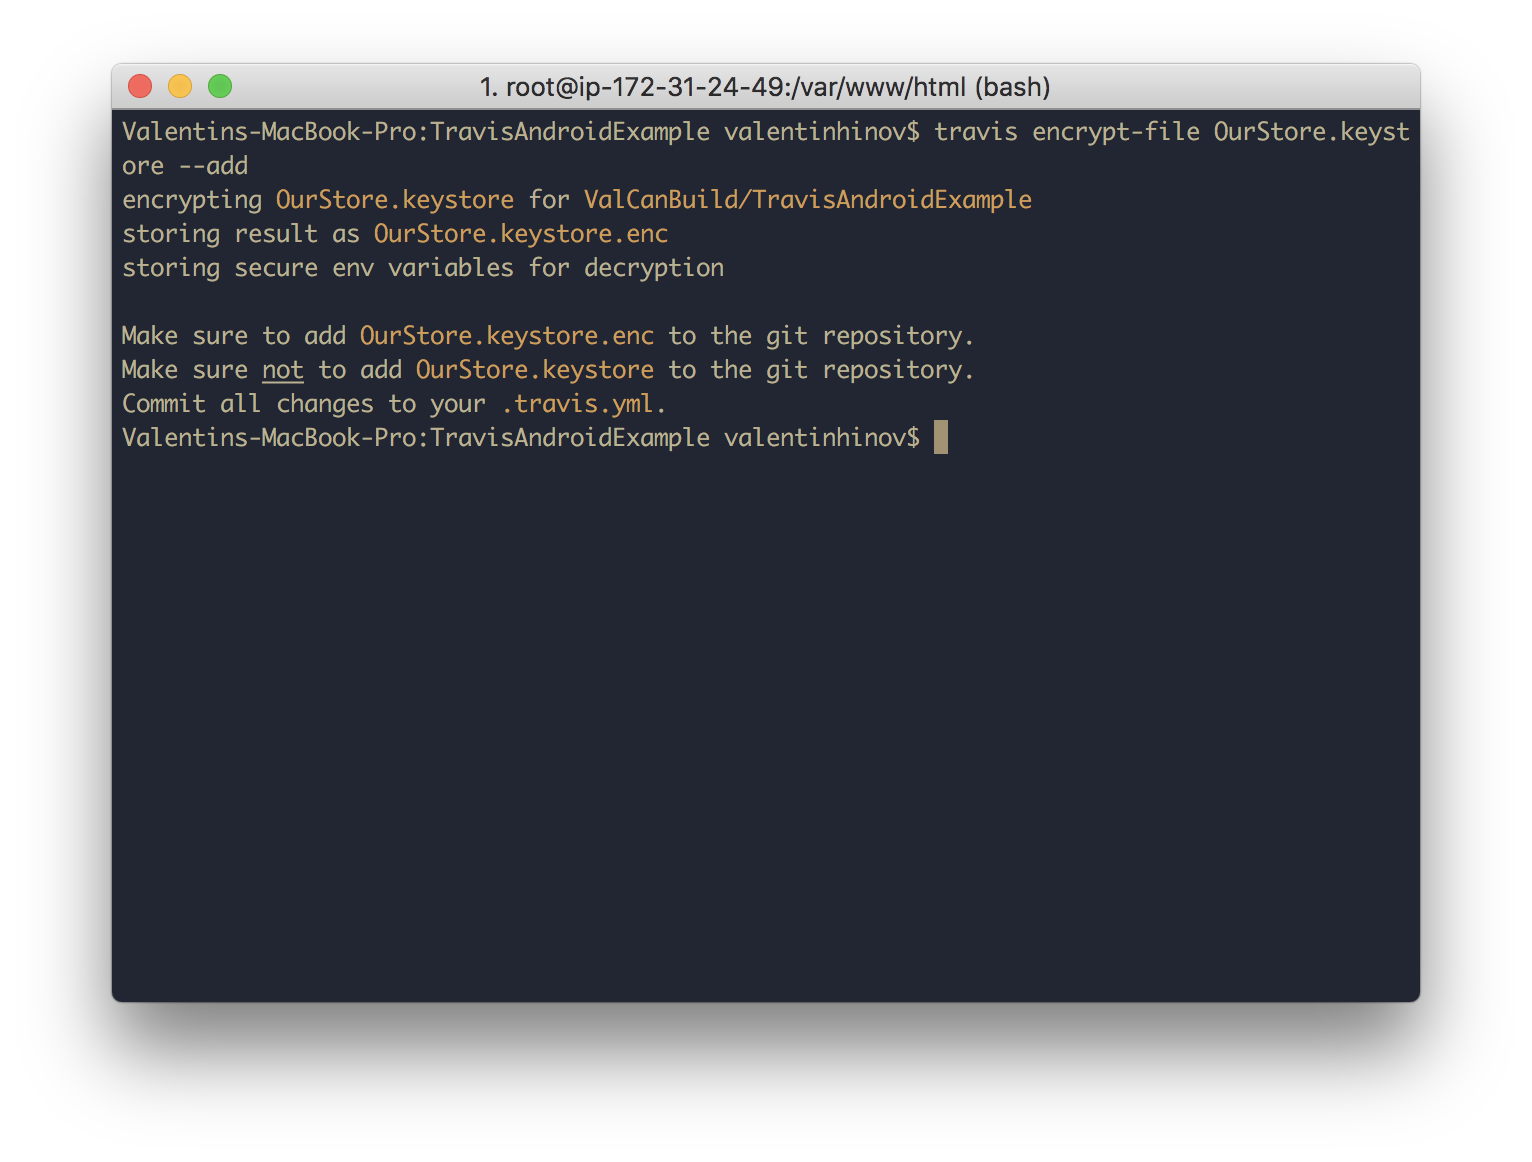 Using TravisCI to securely build and deploy a signed version